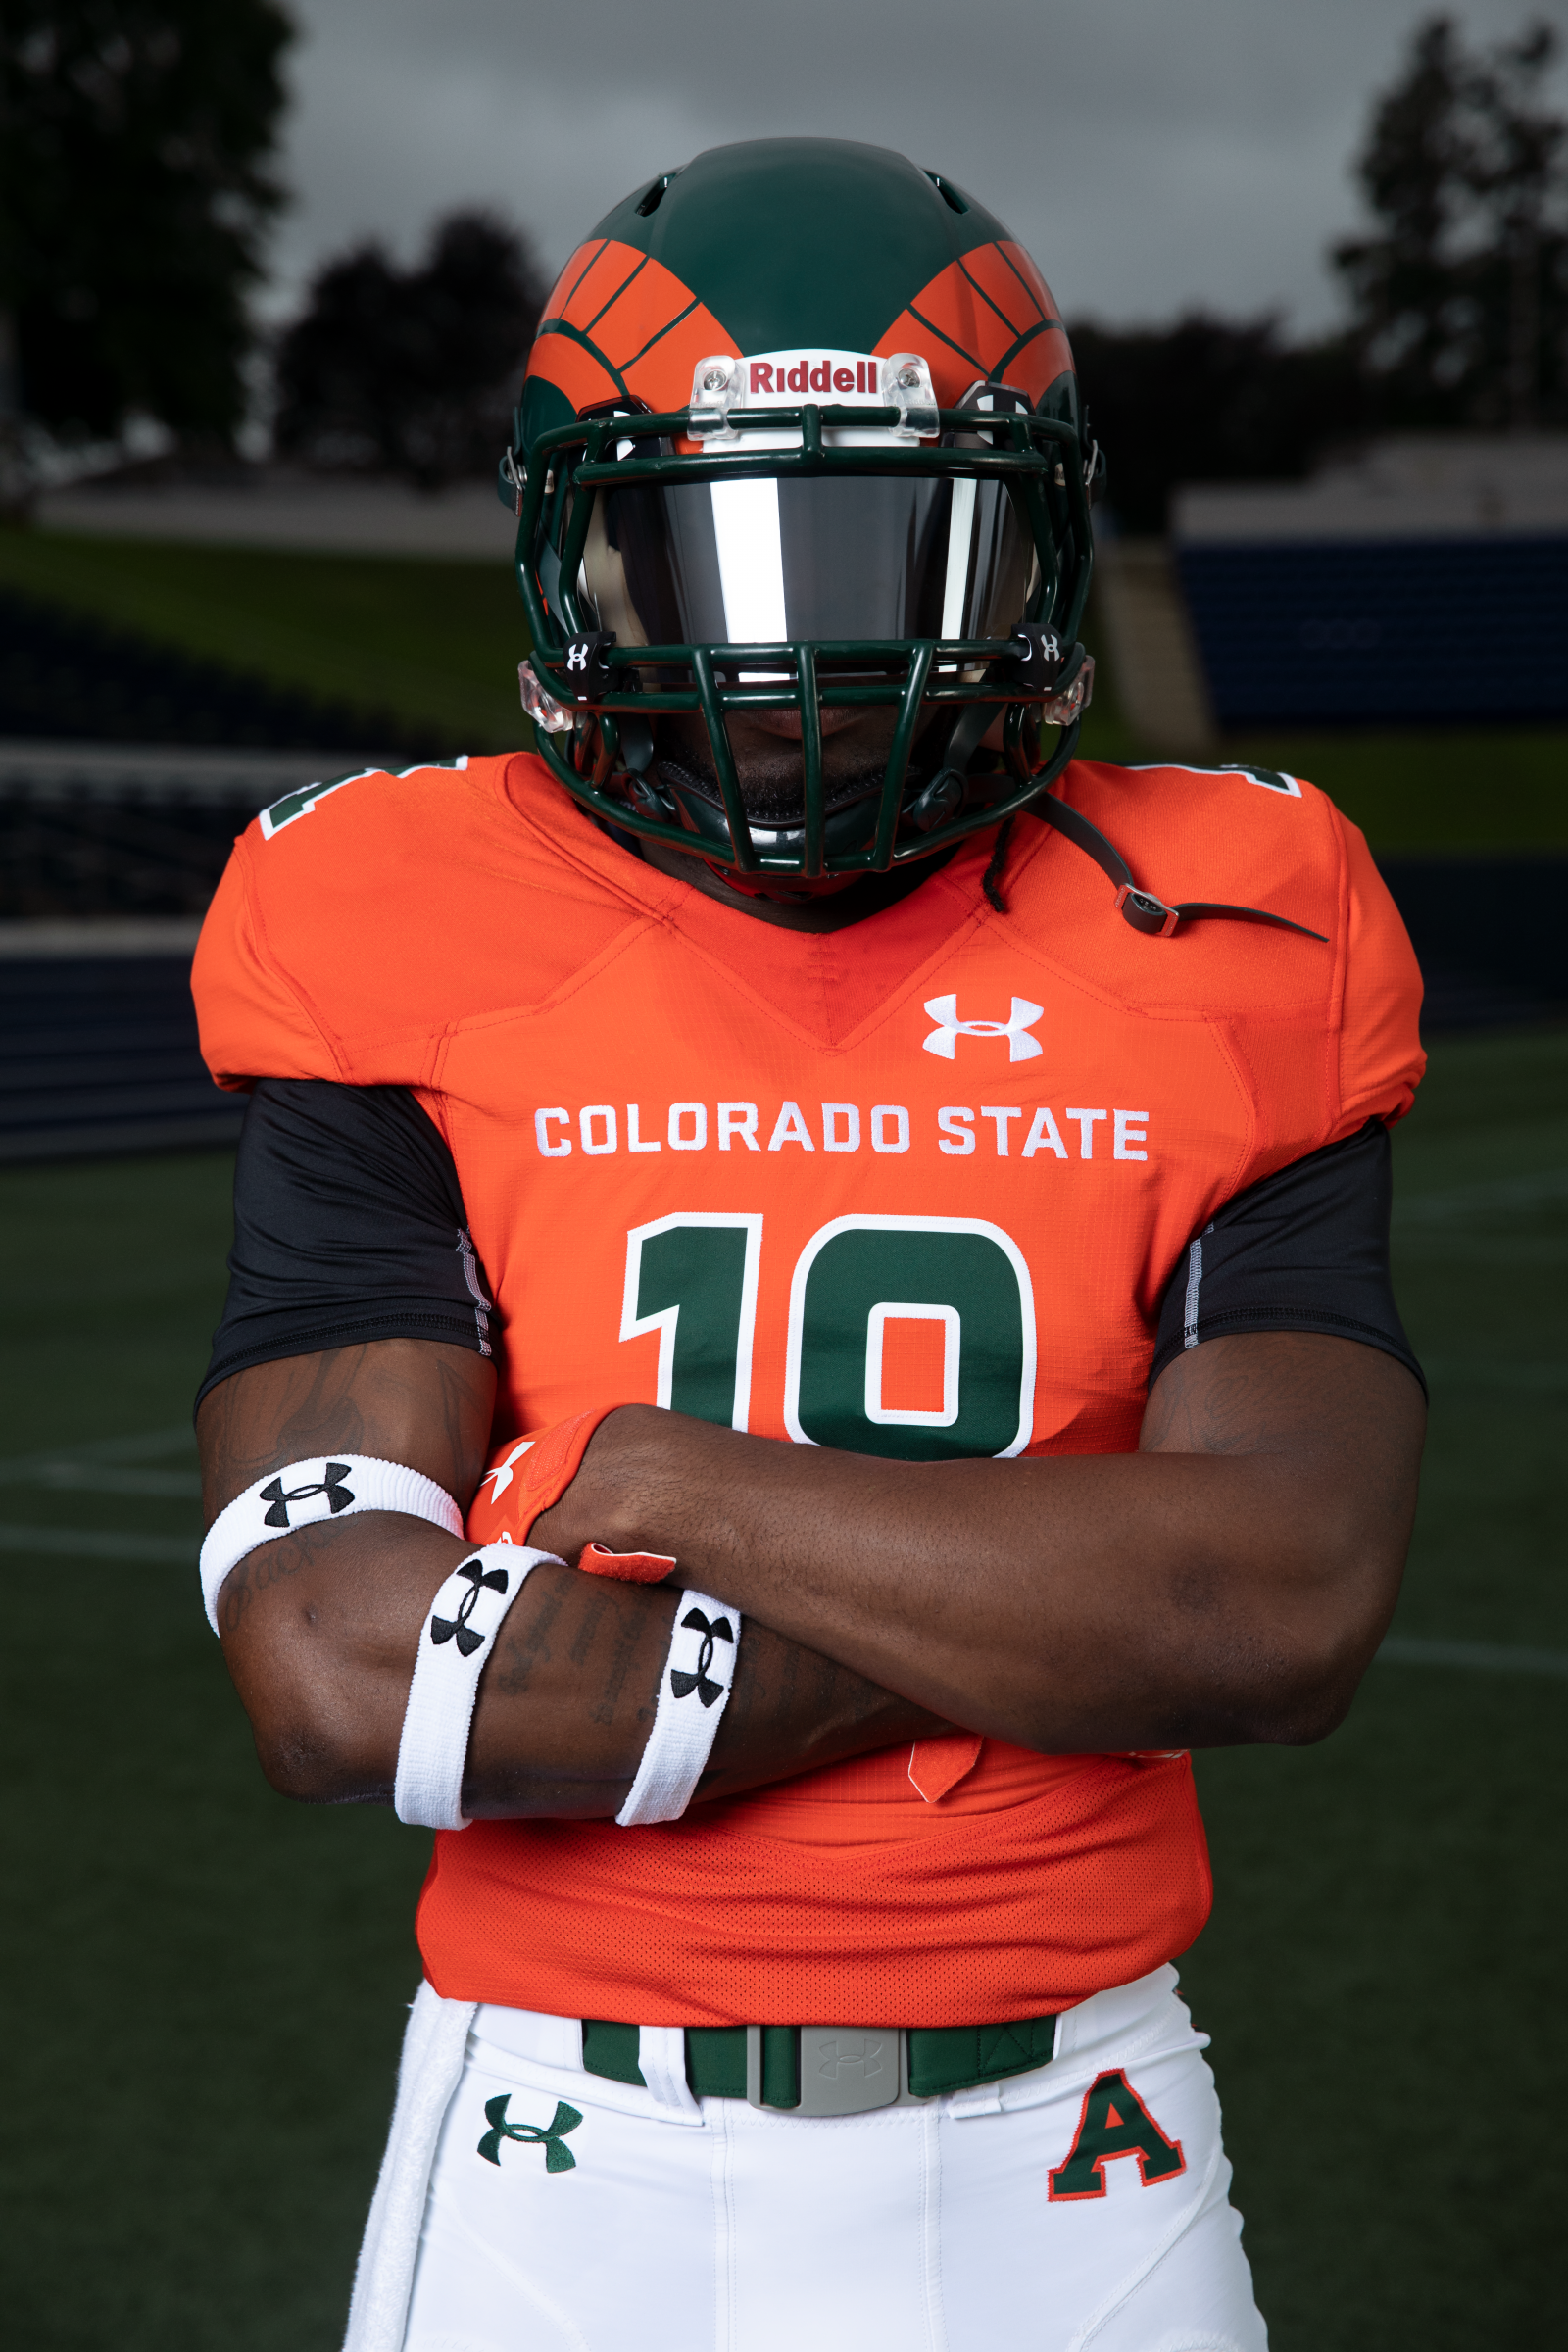 CSU Aggie Throwback Uniform (10)_1.png